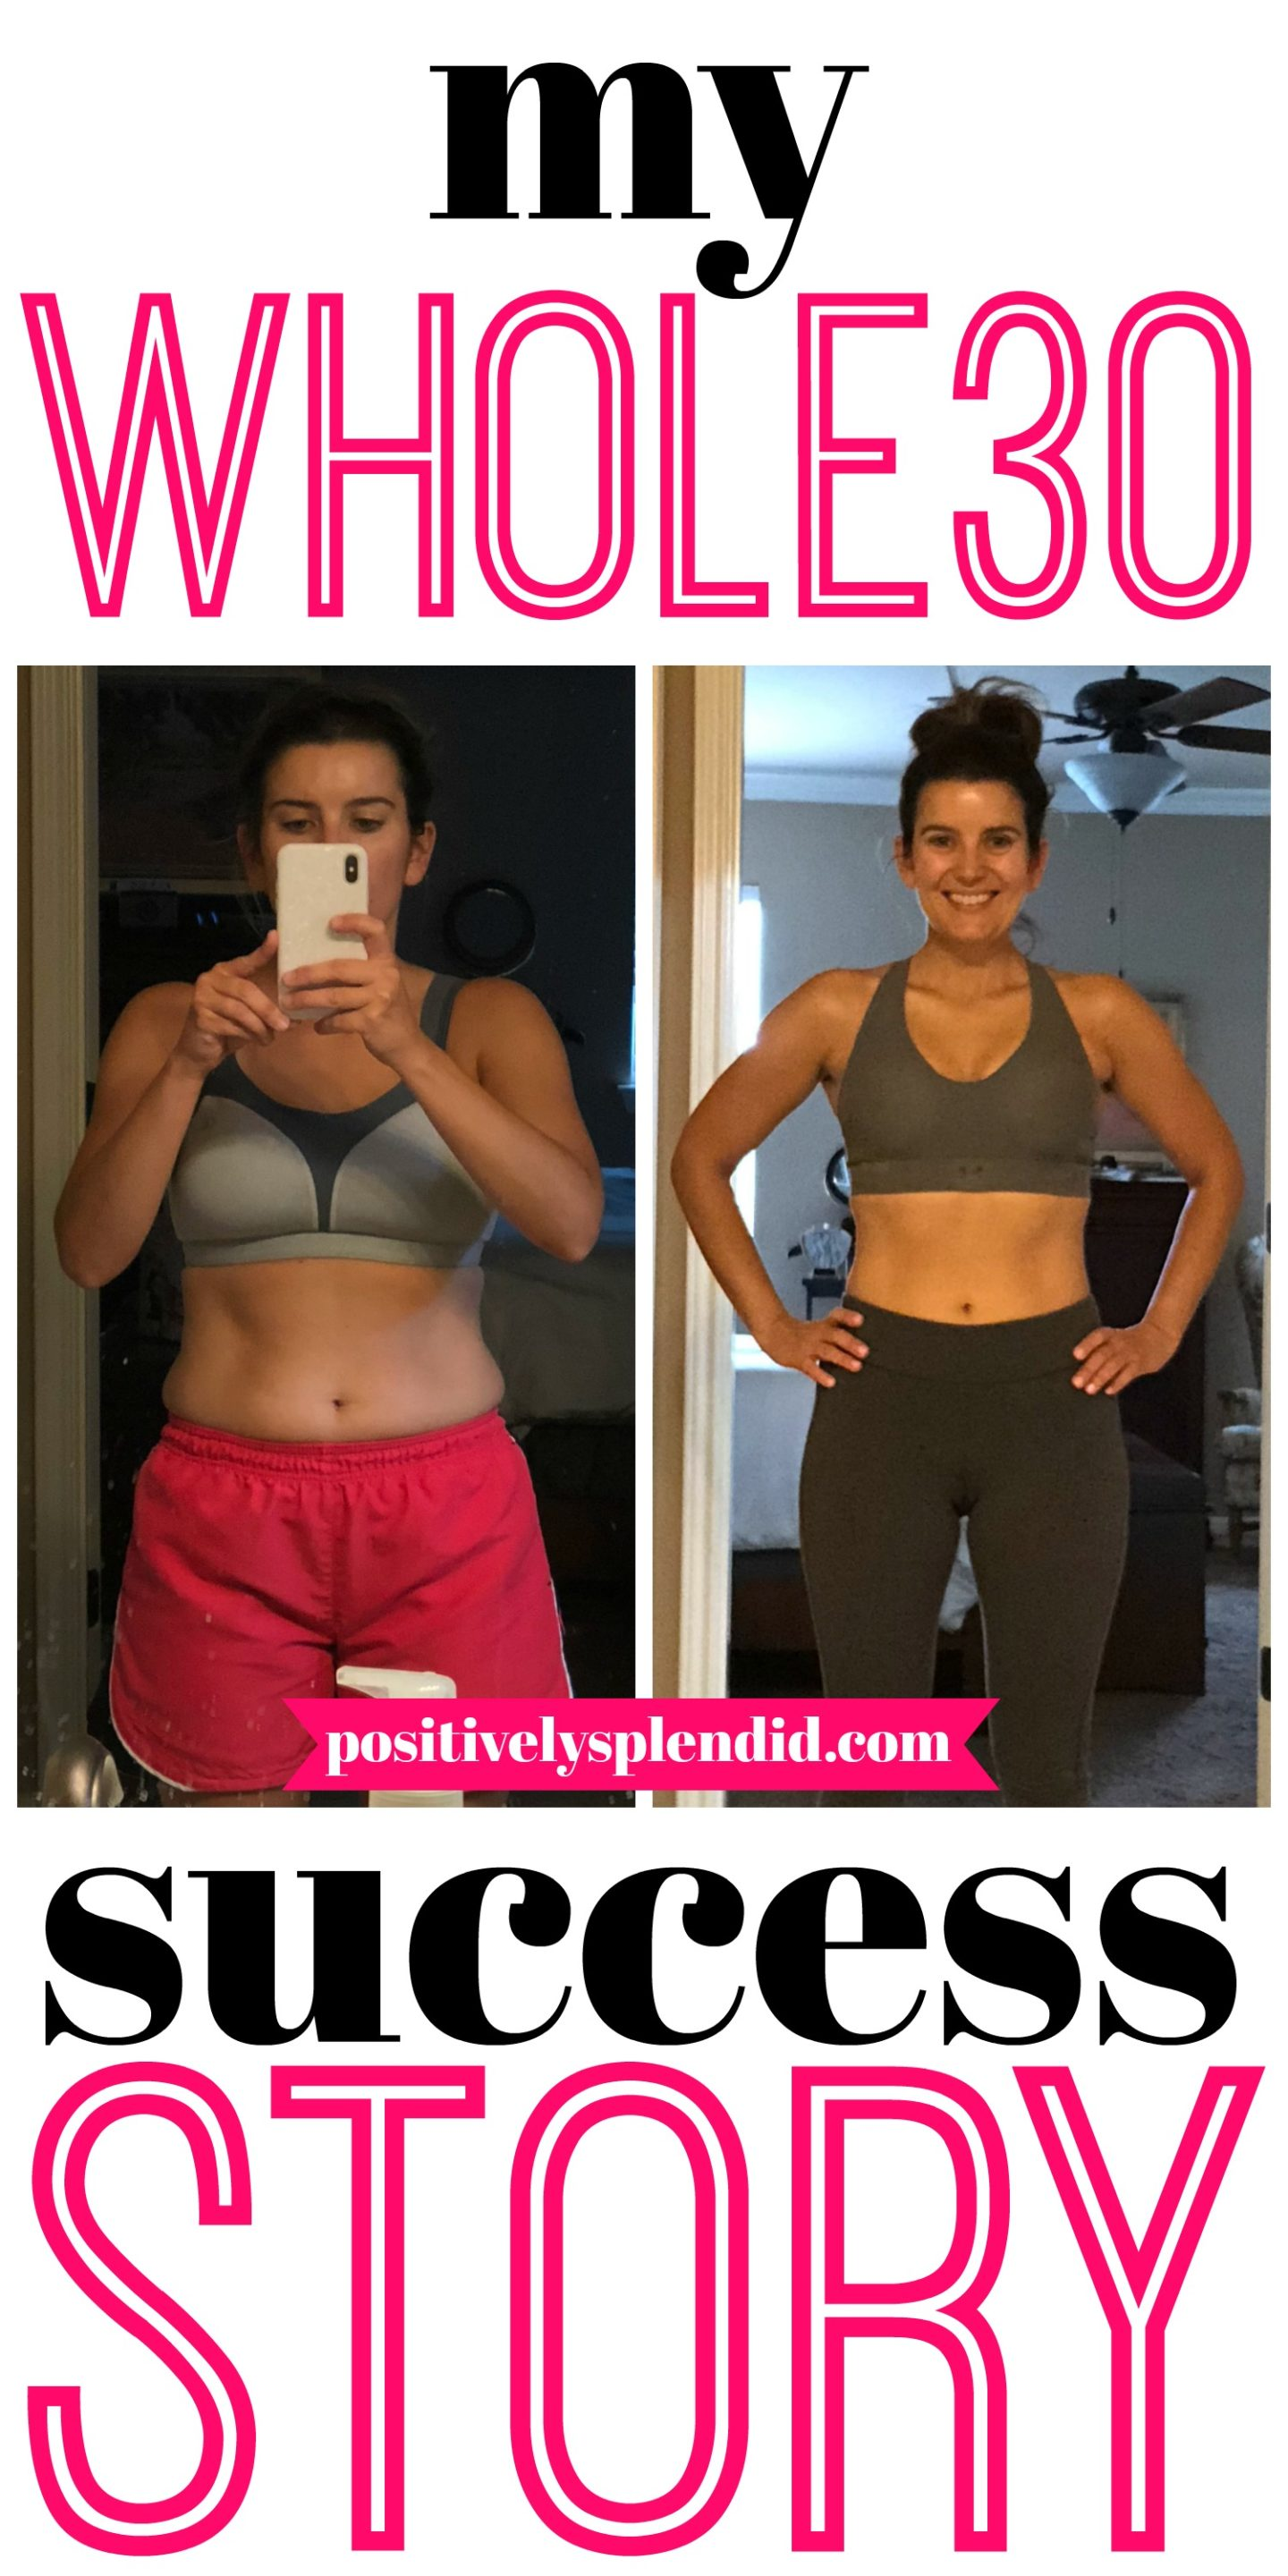 Whole30 Results Success Story